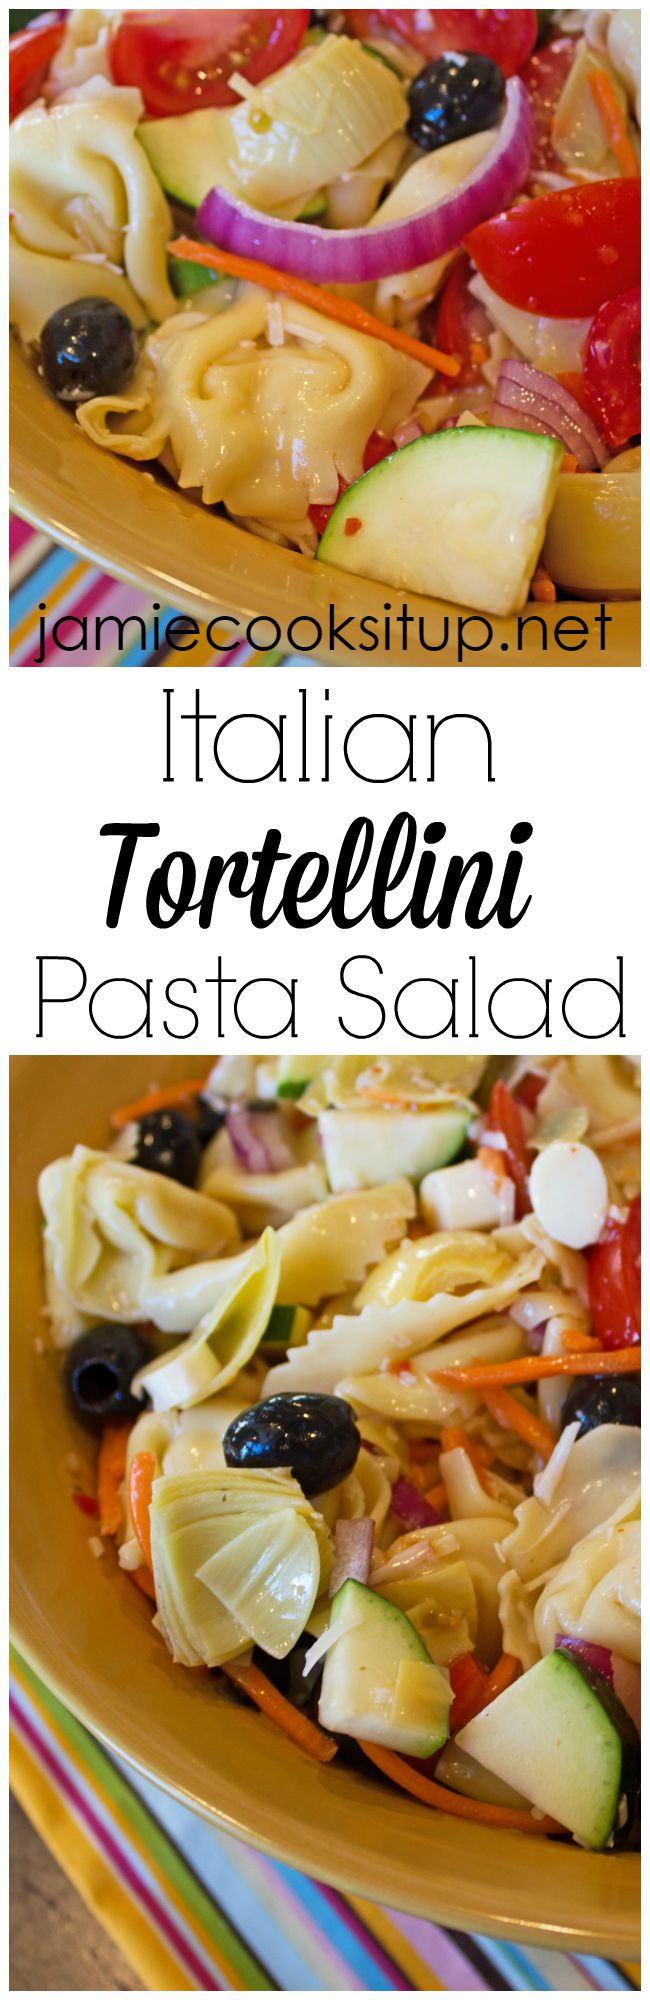 Italian Tortellini Pasta Salad from Jamie Cooks It Up!